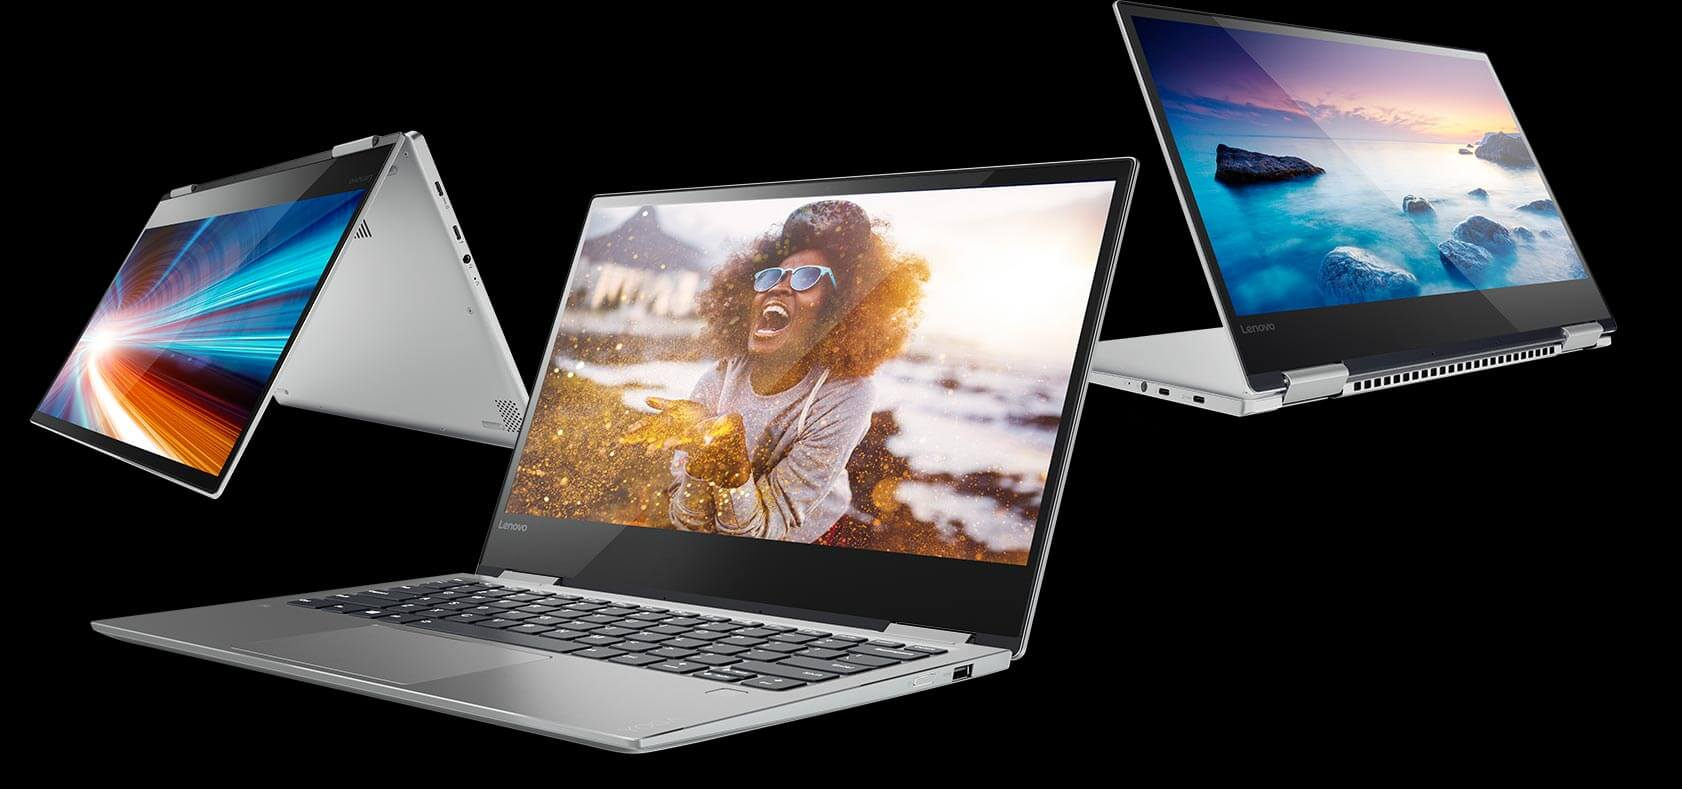 Lenovo 2-in-1 laptops in laptop, tent and display modes